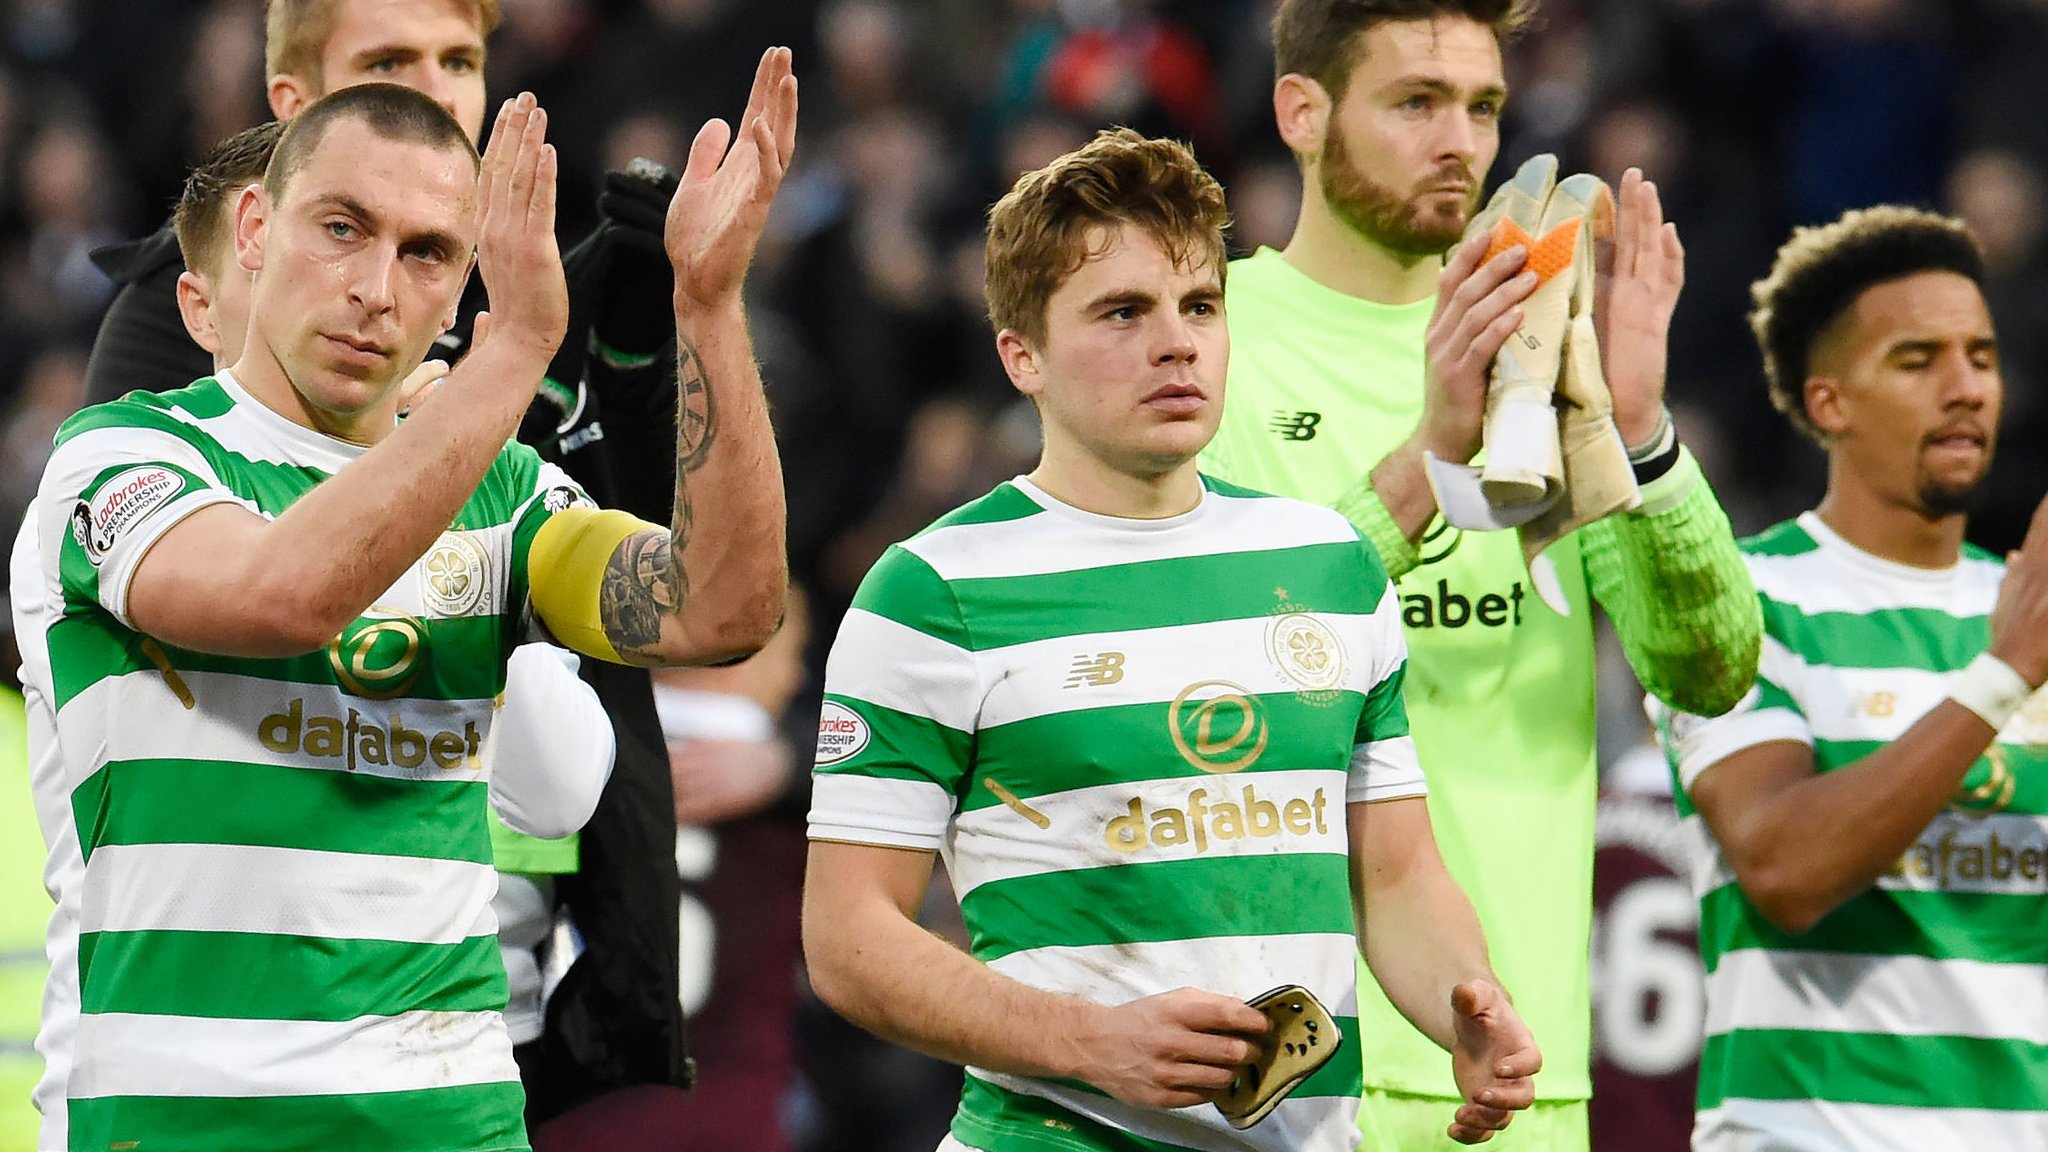 Celtic's 69-game unbeaten run may never be beaten, says Rodgers after defeat